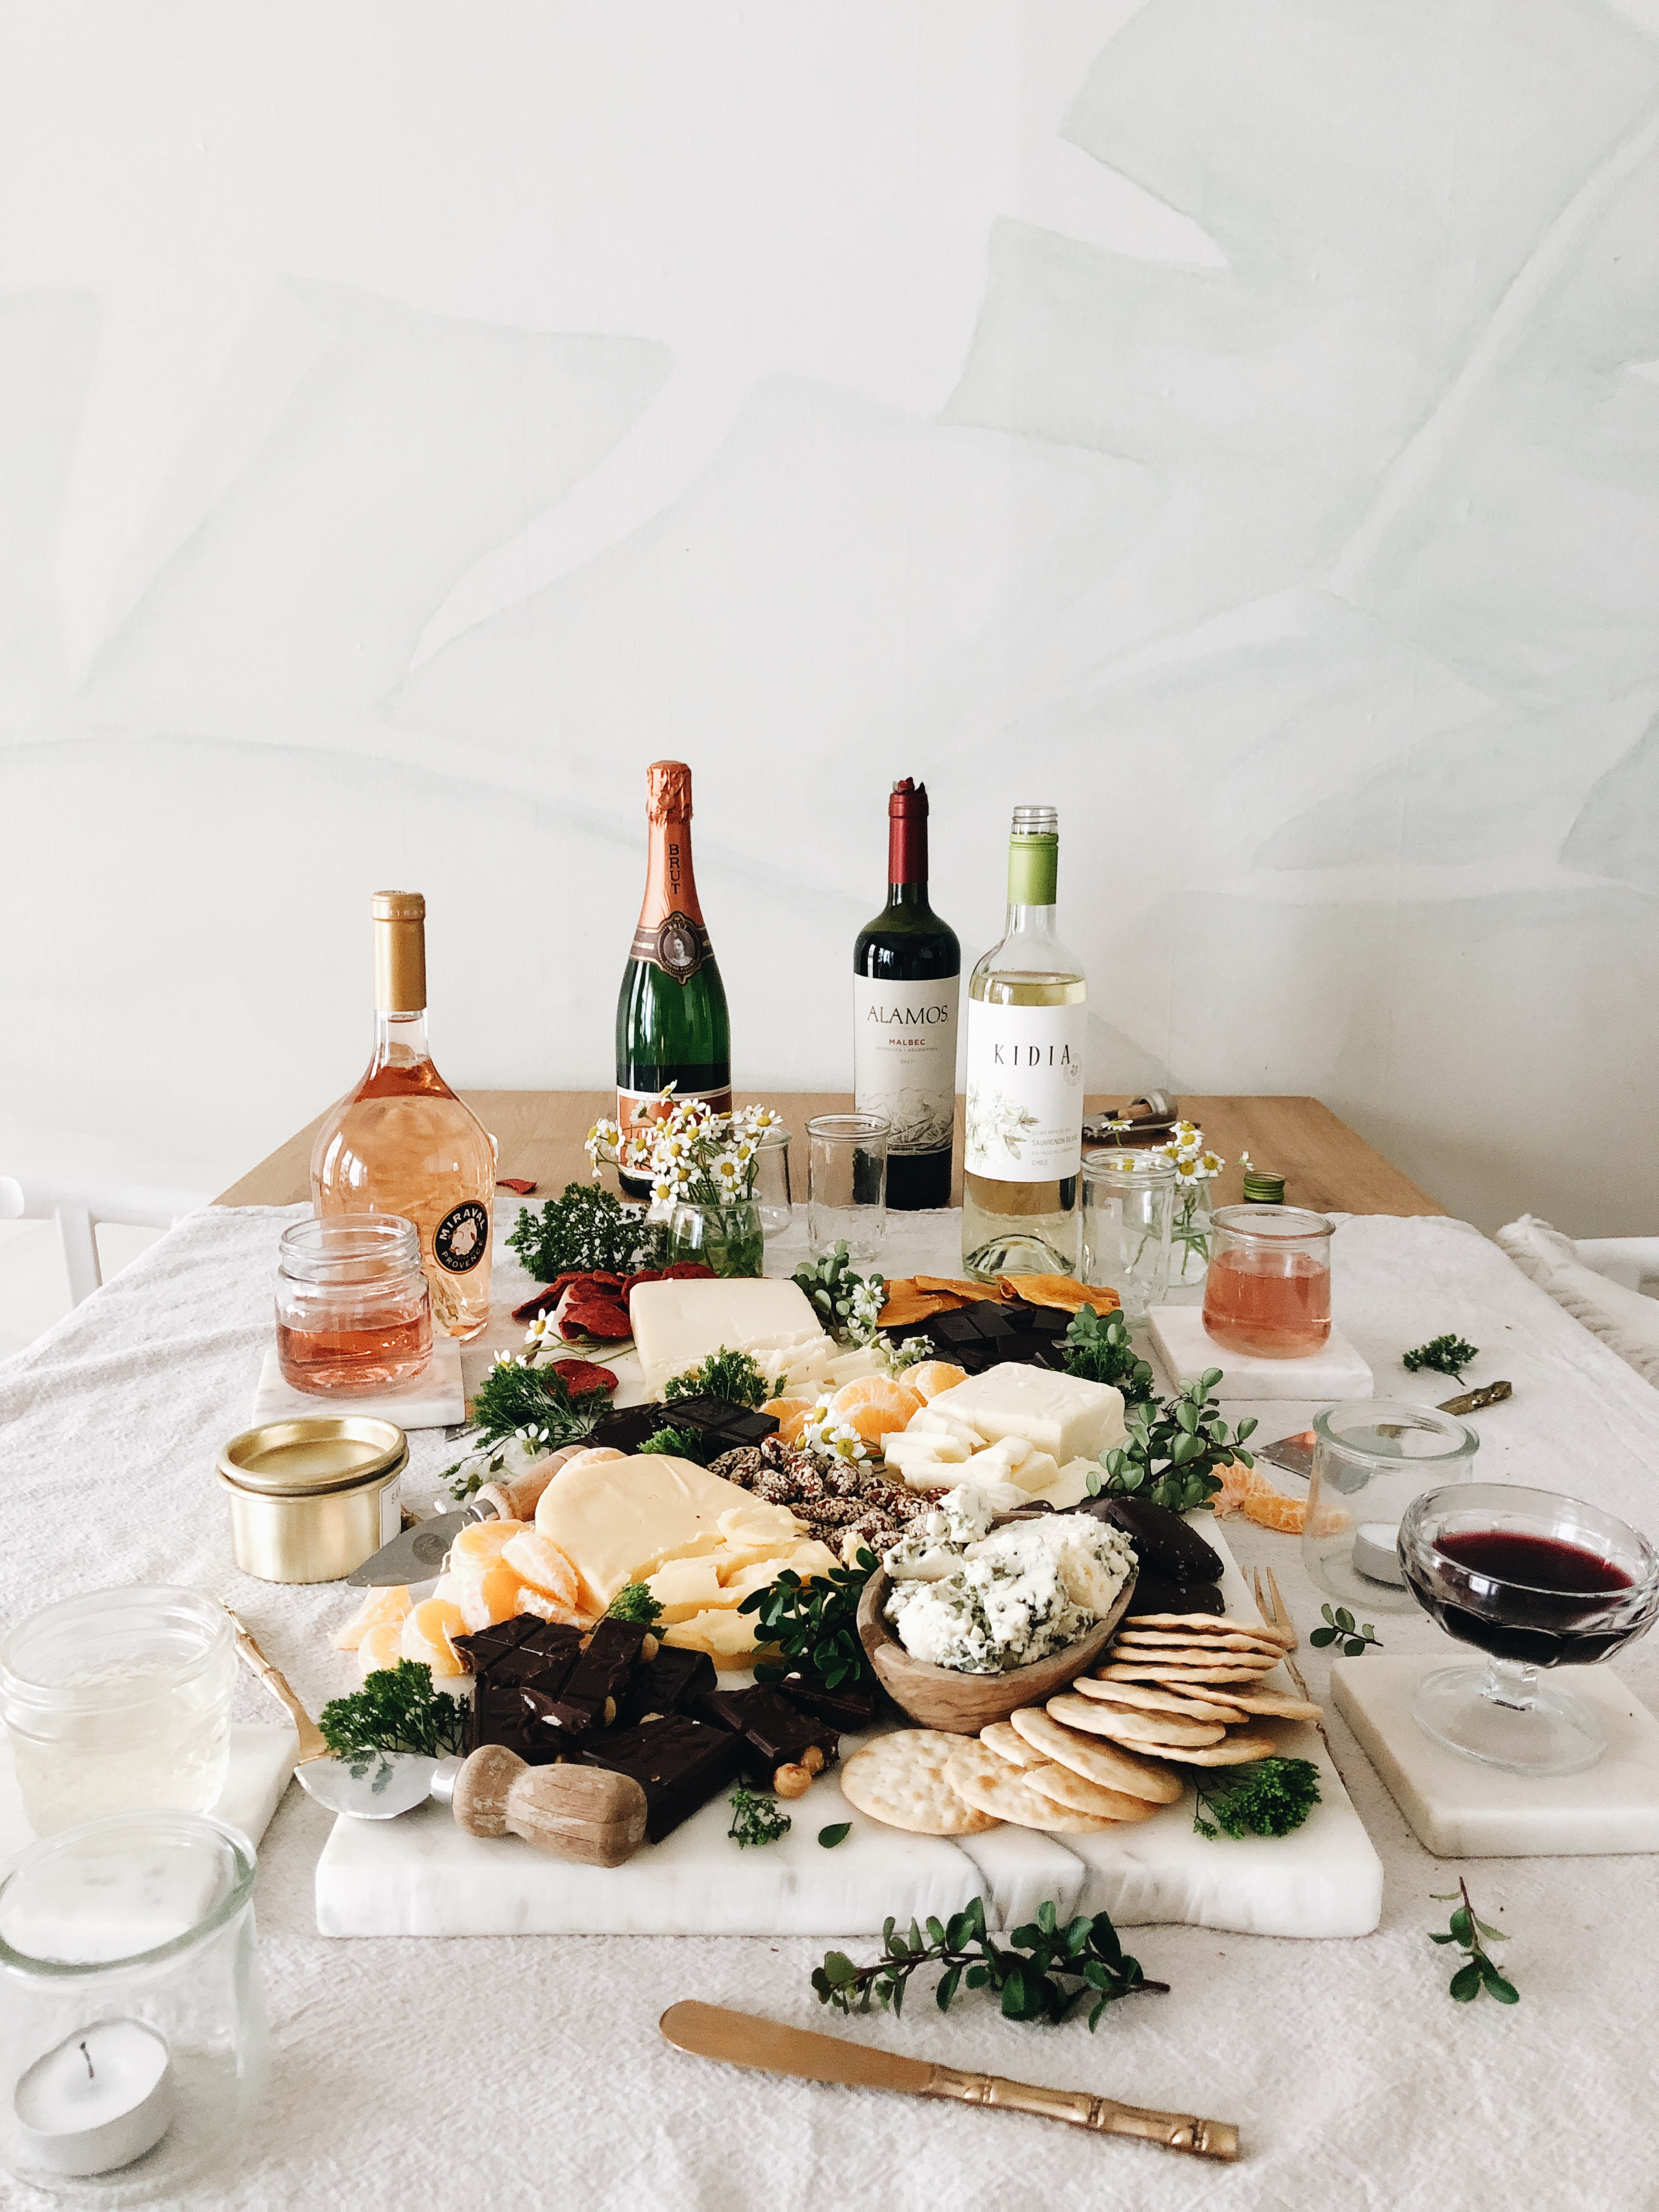 Chocolate, Cheese and Wine - Oh My! / Bev Cooks